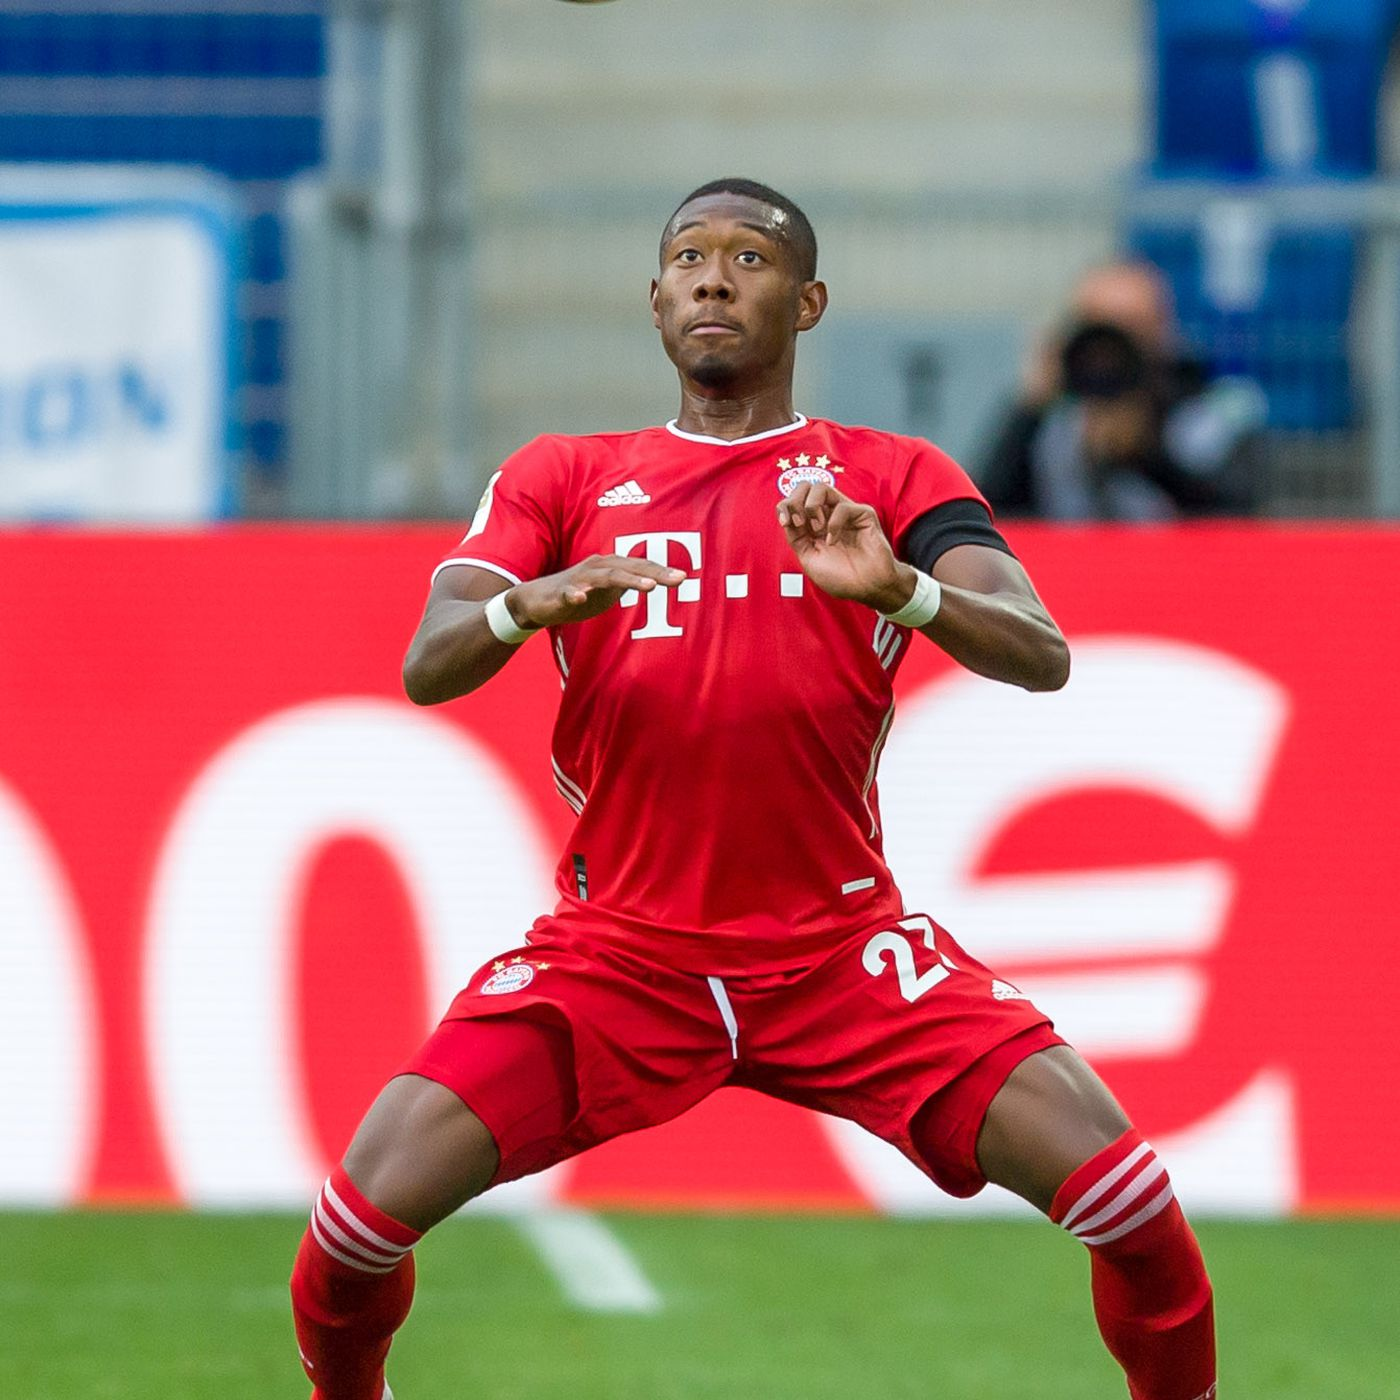 Liverpool and Real Madrid to battle for David Alaba - Sports Leo